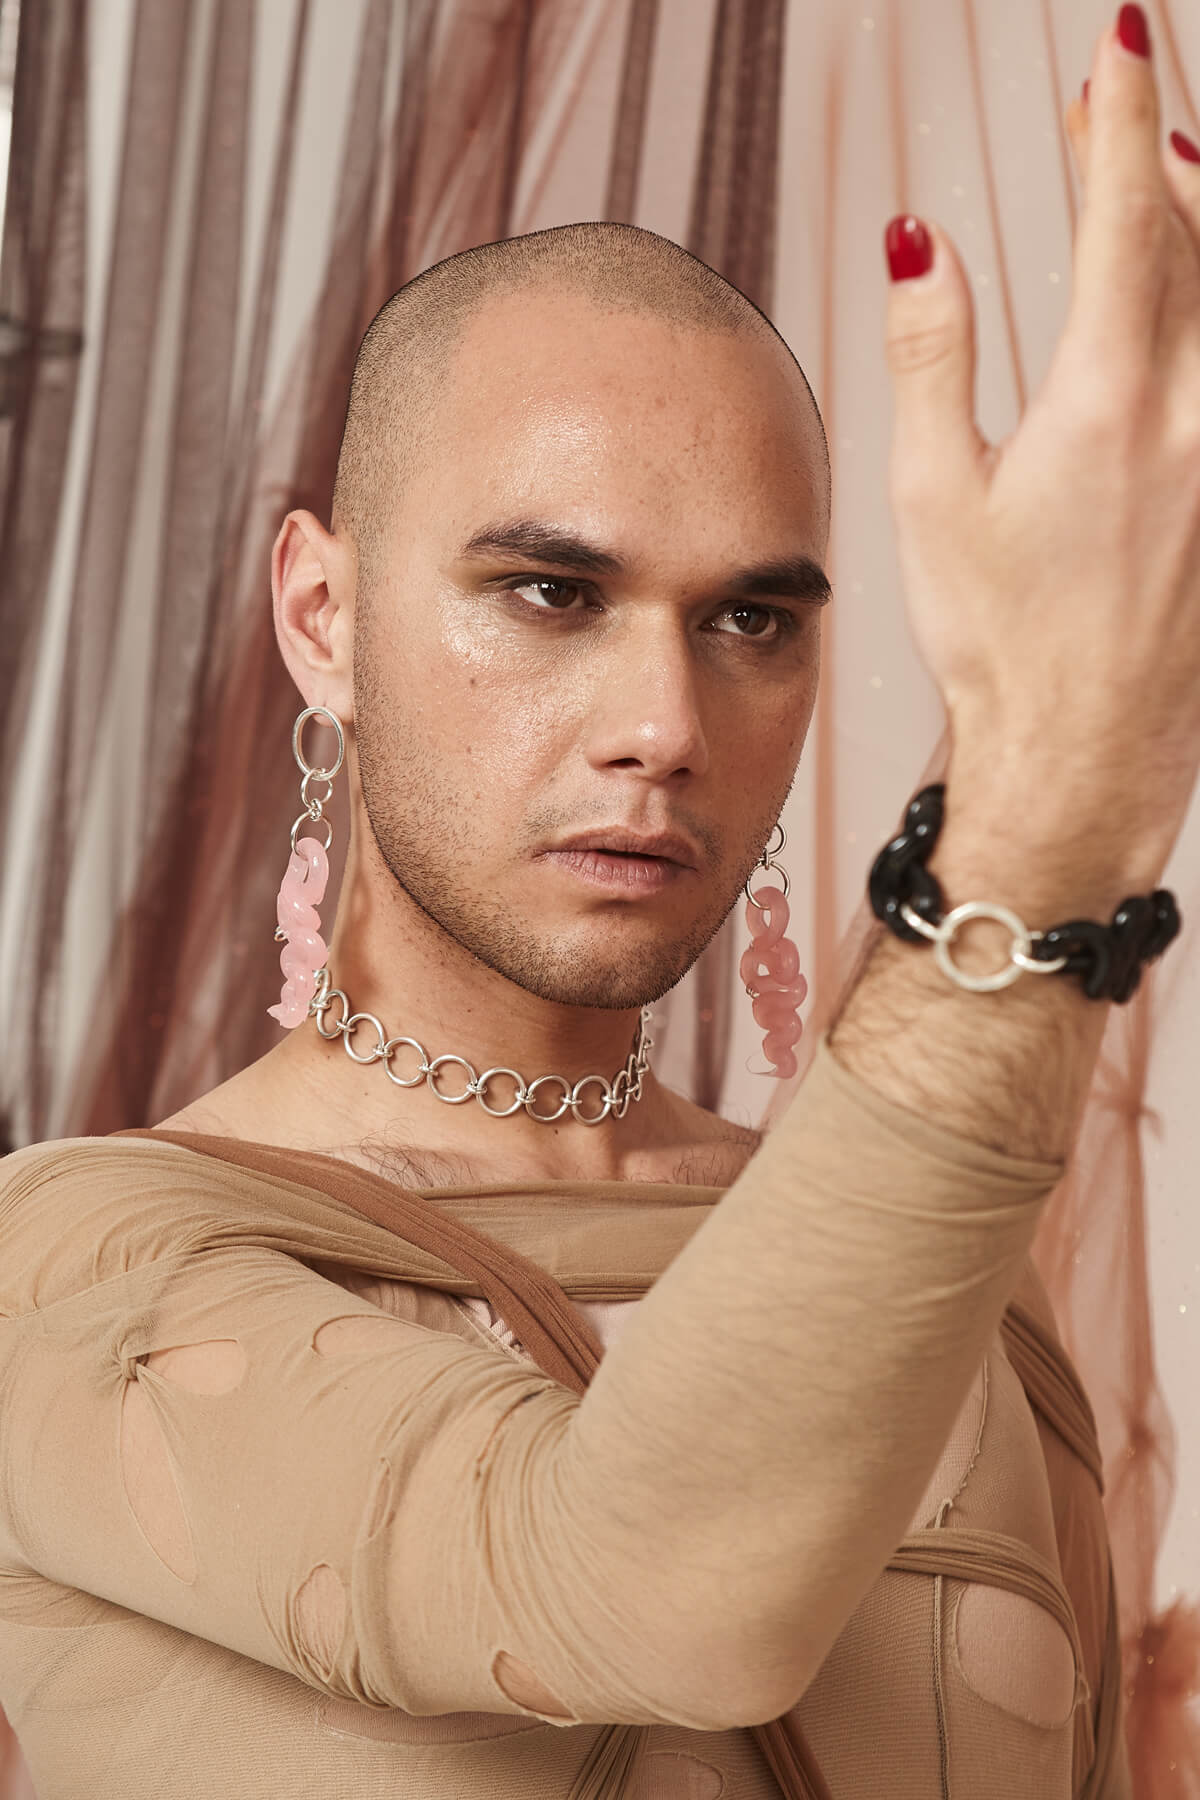 A model wearing pink silicone pendant earrings, a silver choker, and a black silicone bracelet.